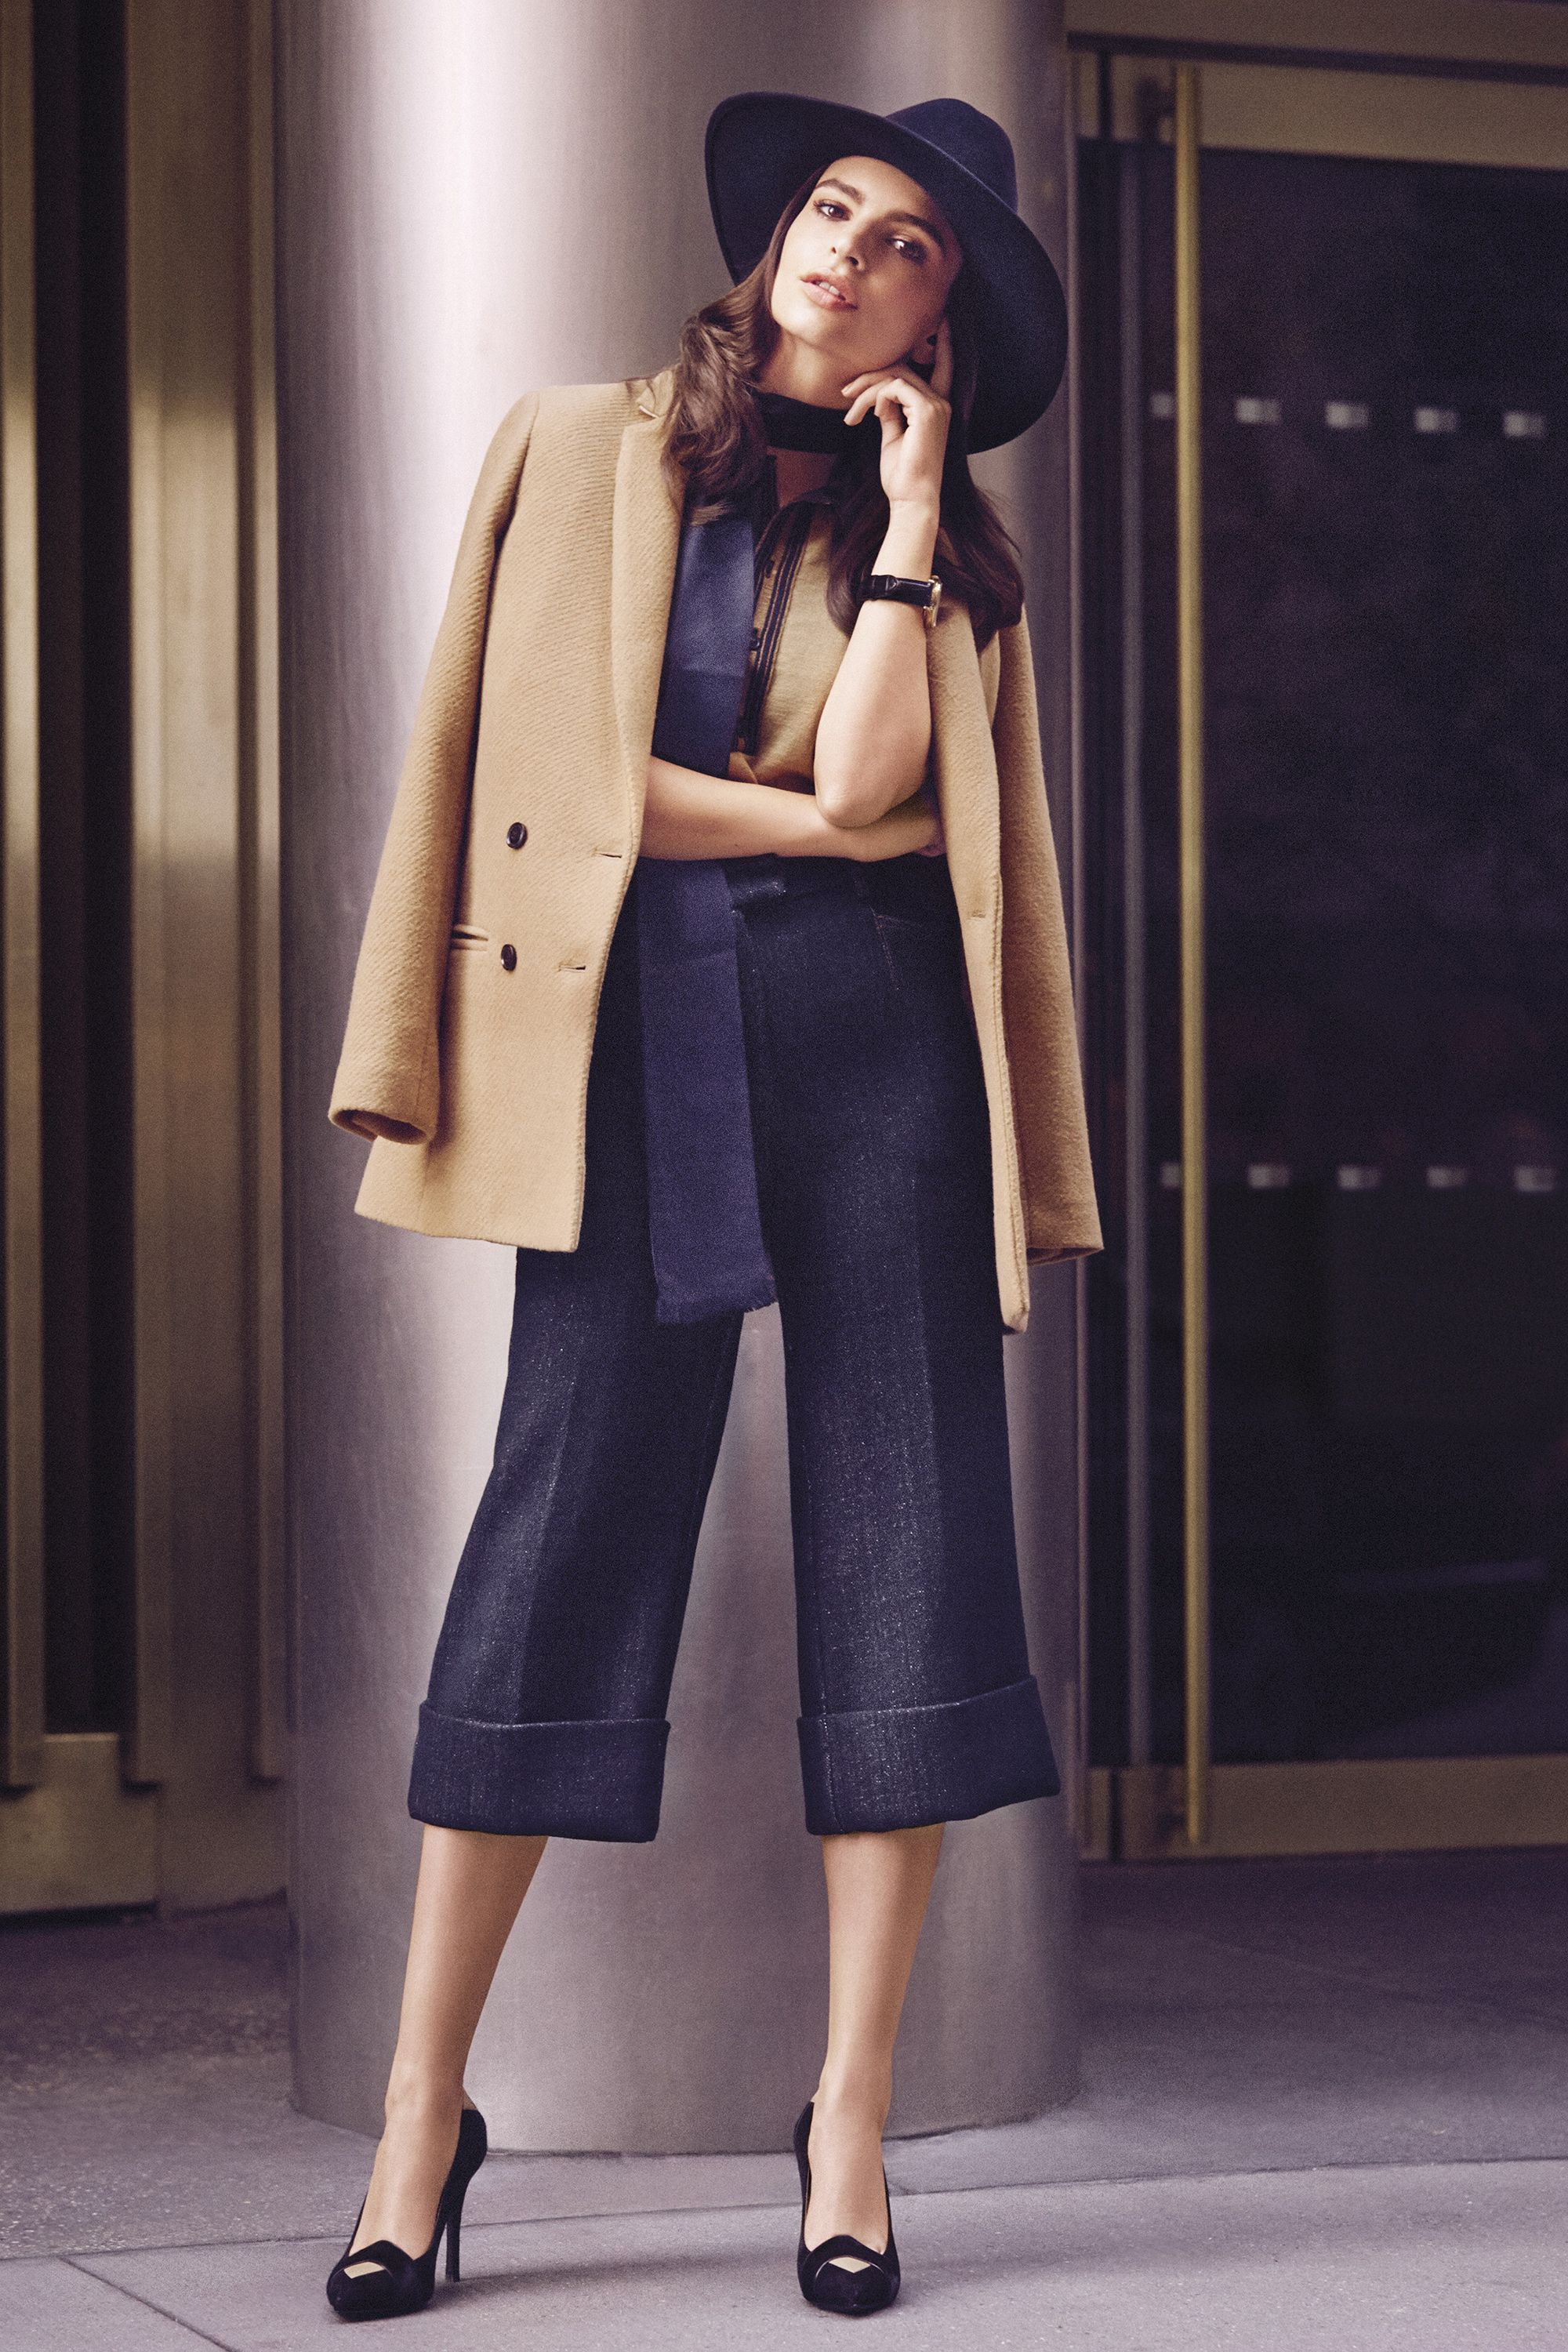 <p><strong> Banana Republic </strong>blazer; <strong>Hilfiger Collection</strong> sweater and pants, <strong>Tommy Hilfiger </strong>stores; <strong>Patricia Underwood</strong> hat; <strong>Standen</strong> scarf, Barneys New York; <strong>Bulova </strong>watch, Macy's; <strong>Longchamp</strong> shoes. </p>